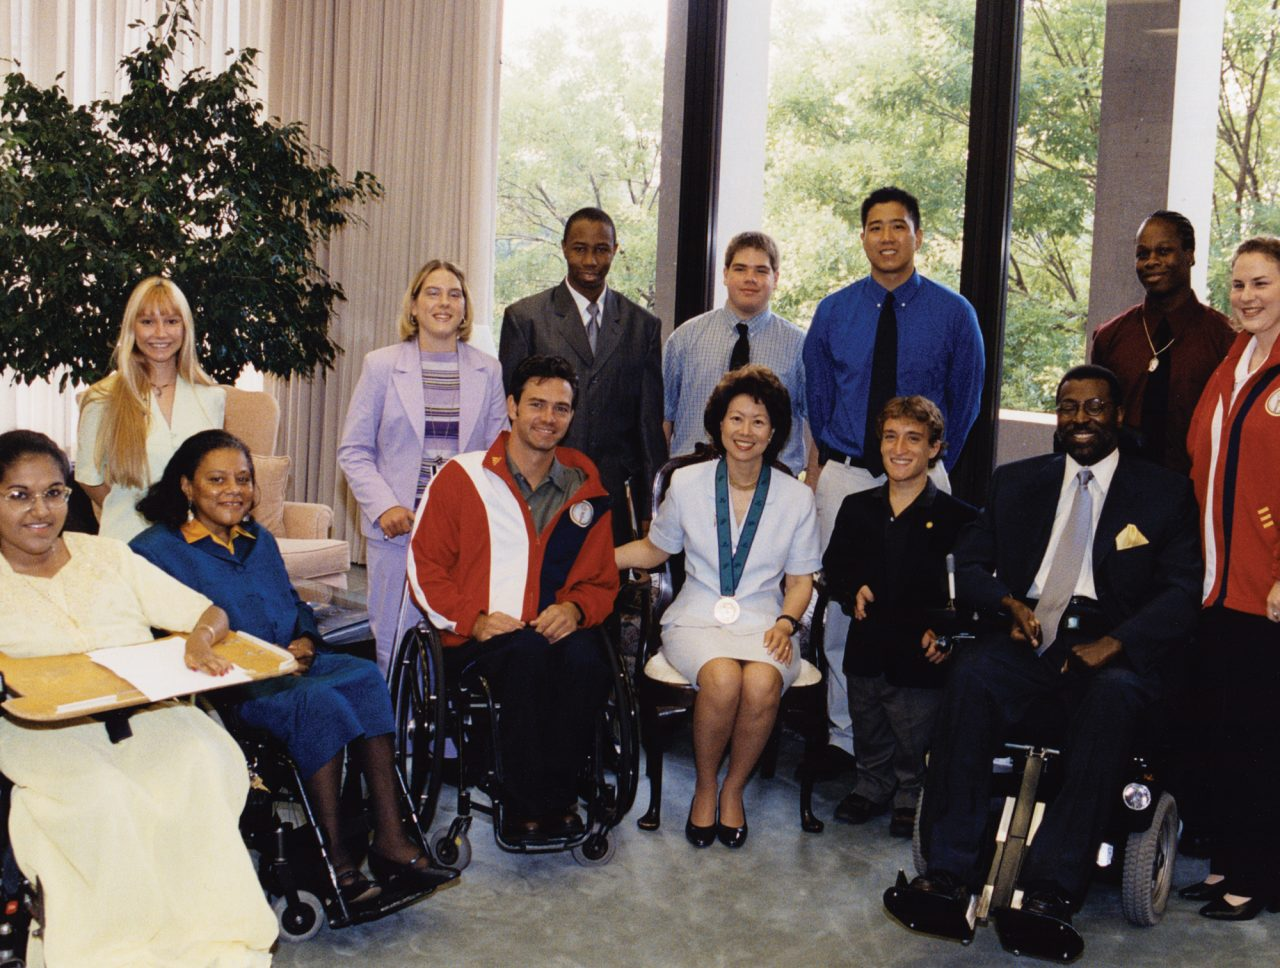 Secretary Elaine Chao meeting with Americans with disabilities on how her department can improve employment in this community.